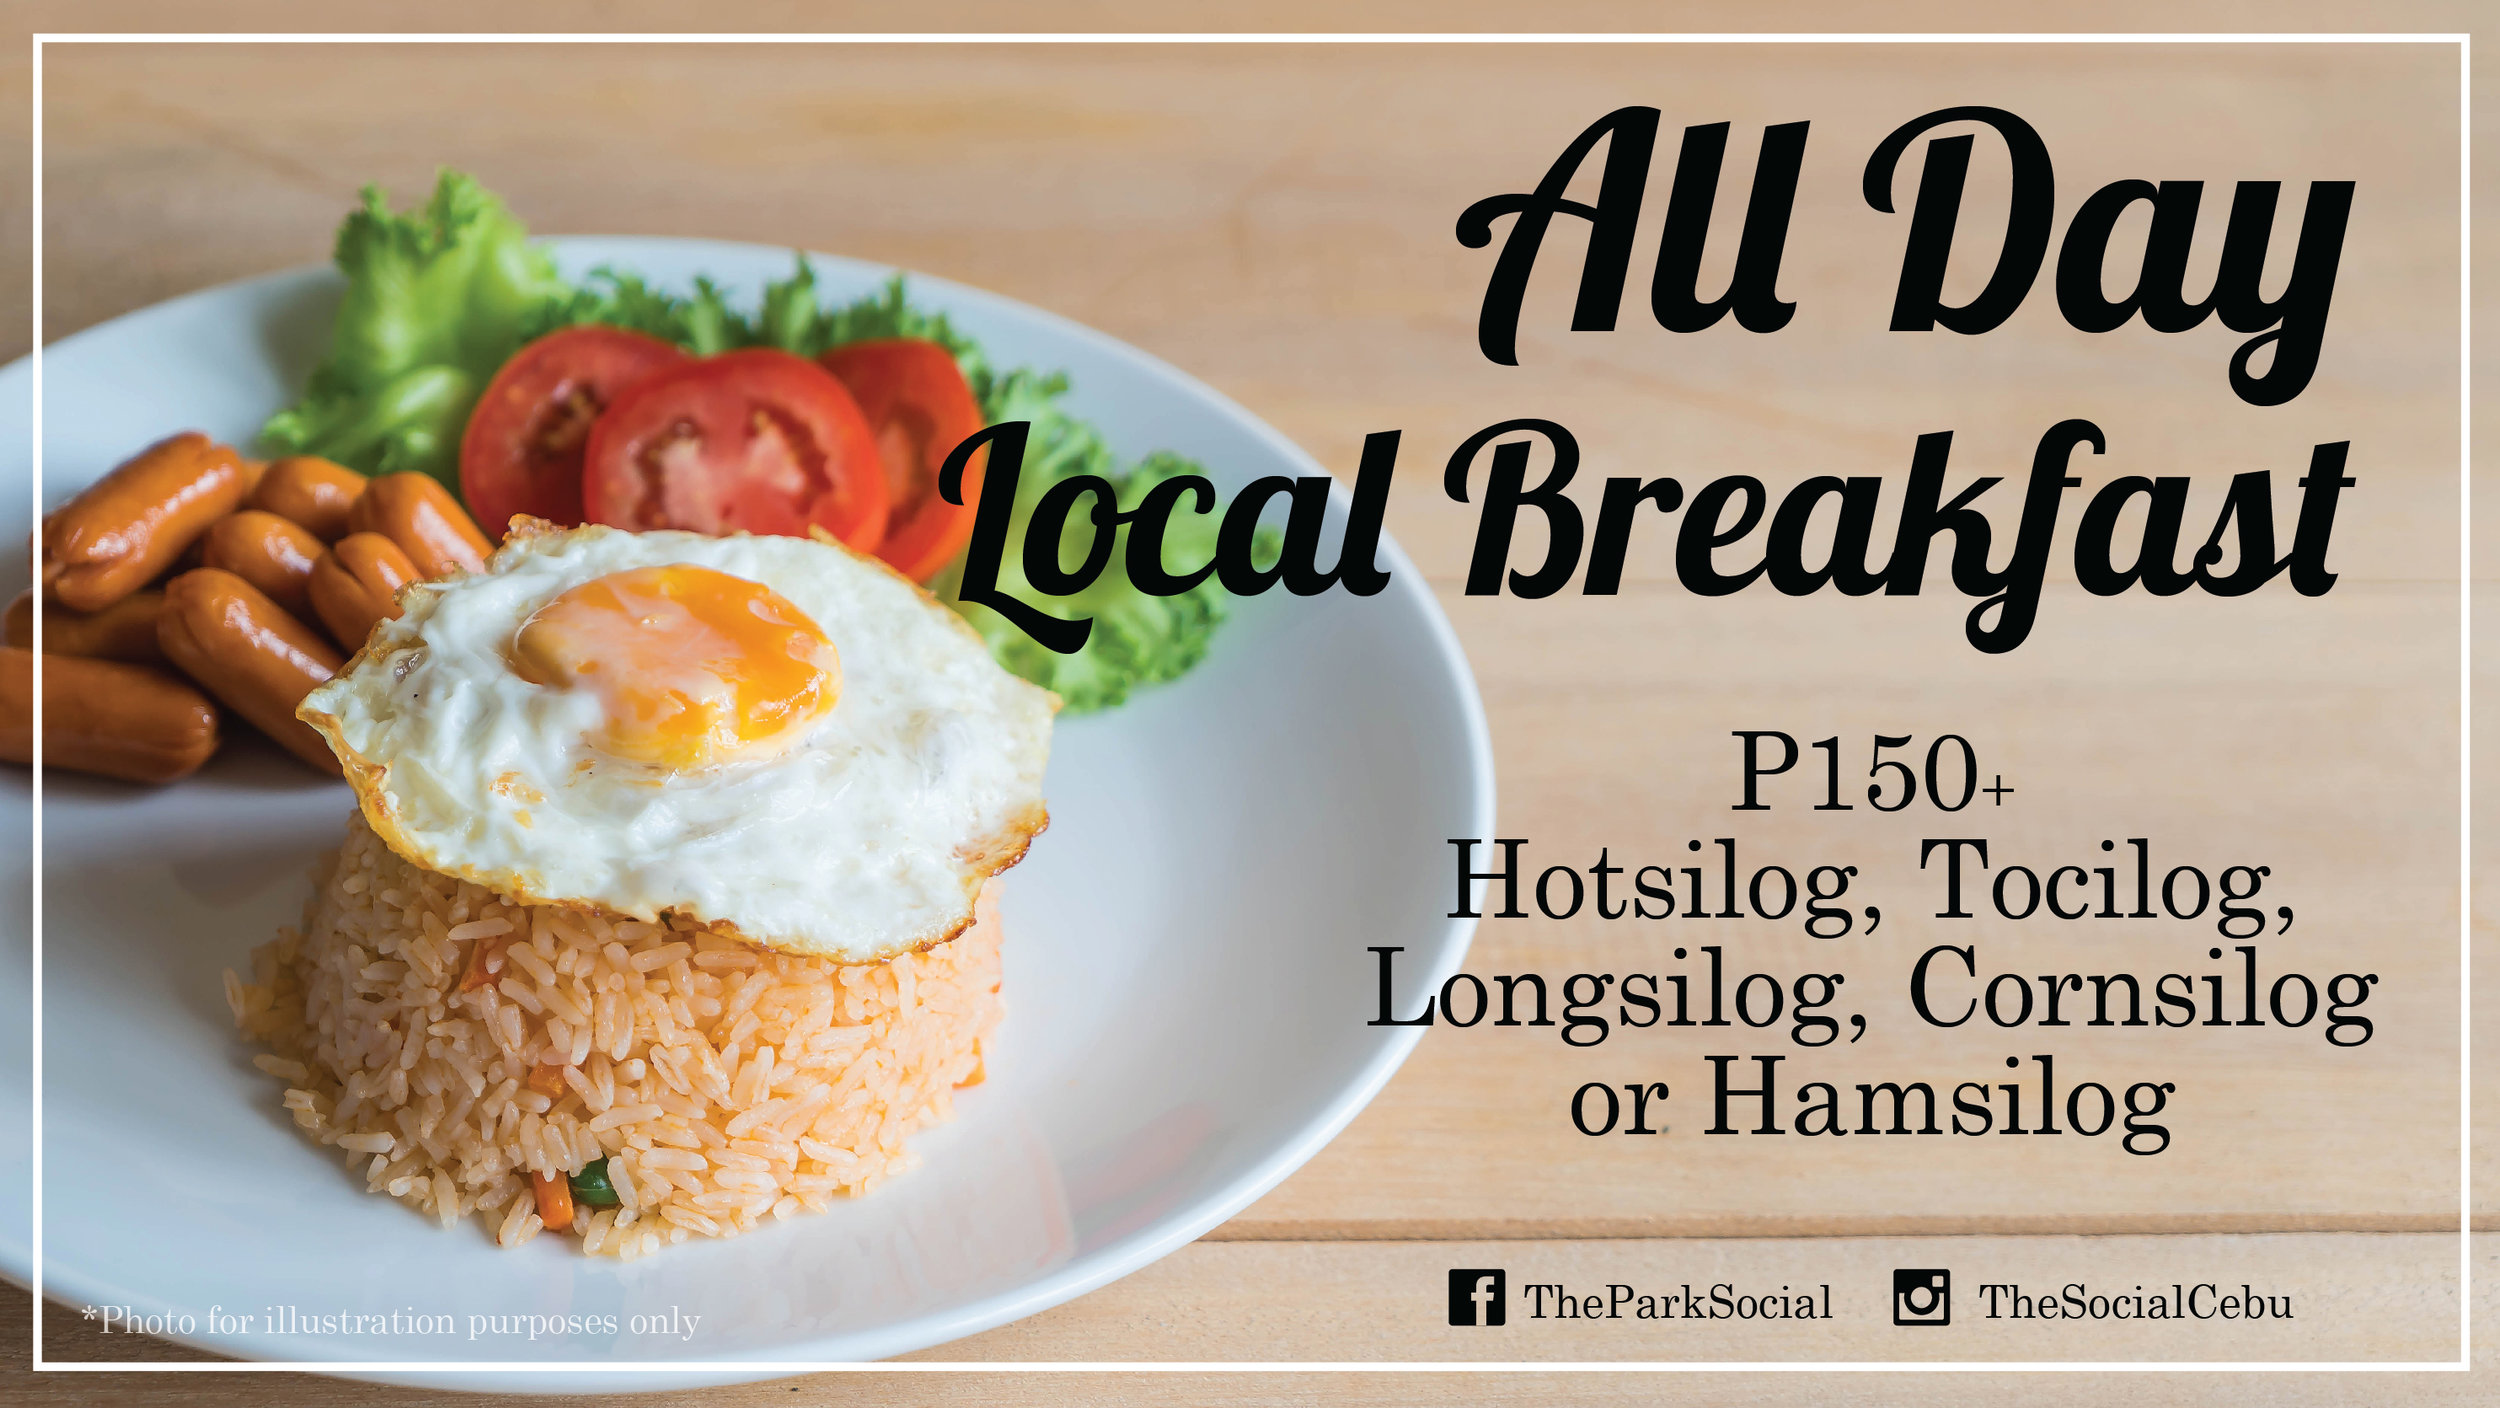 All Day Local Breakfast